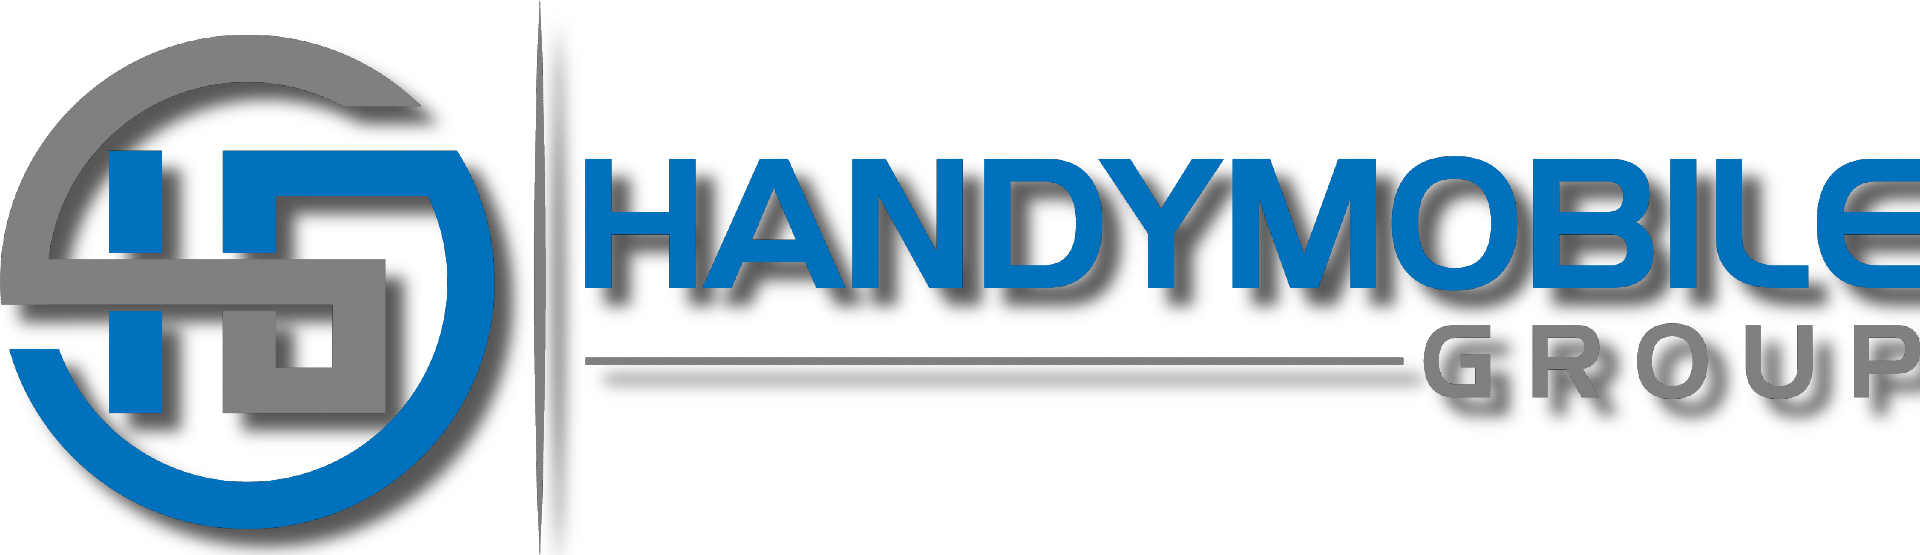 Handymobile Group